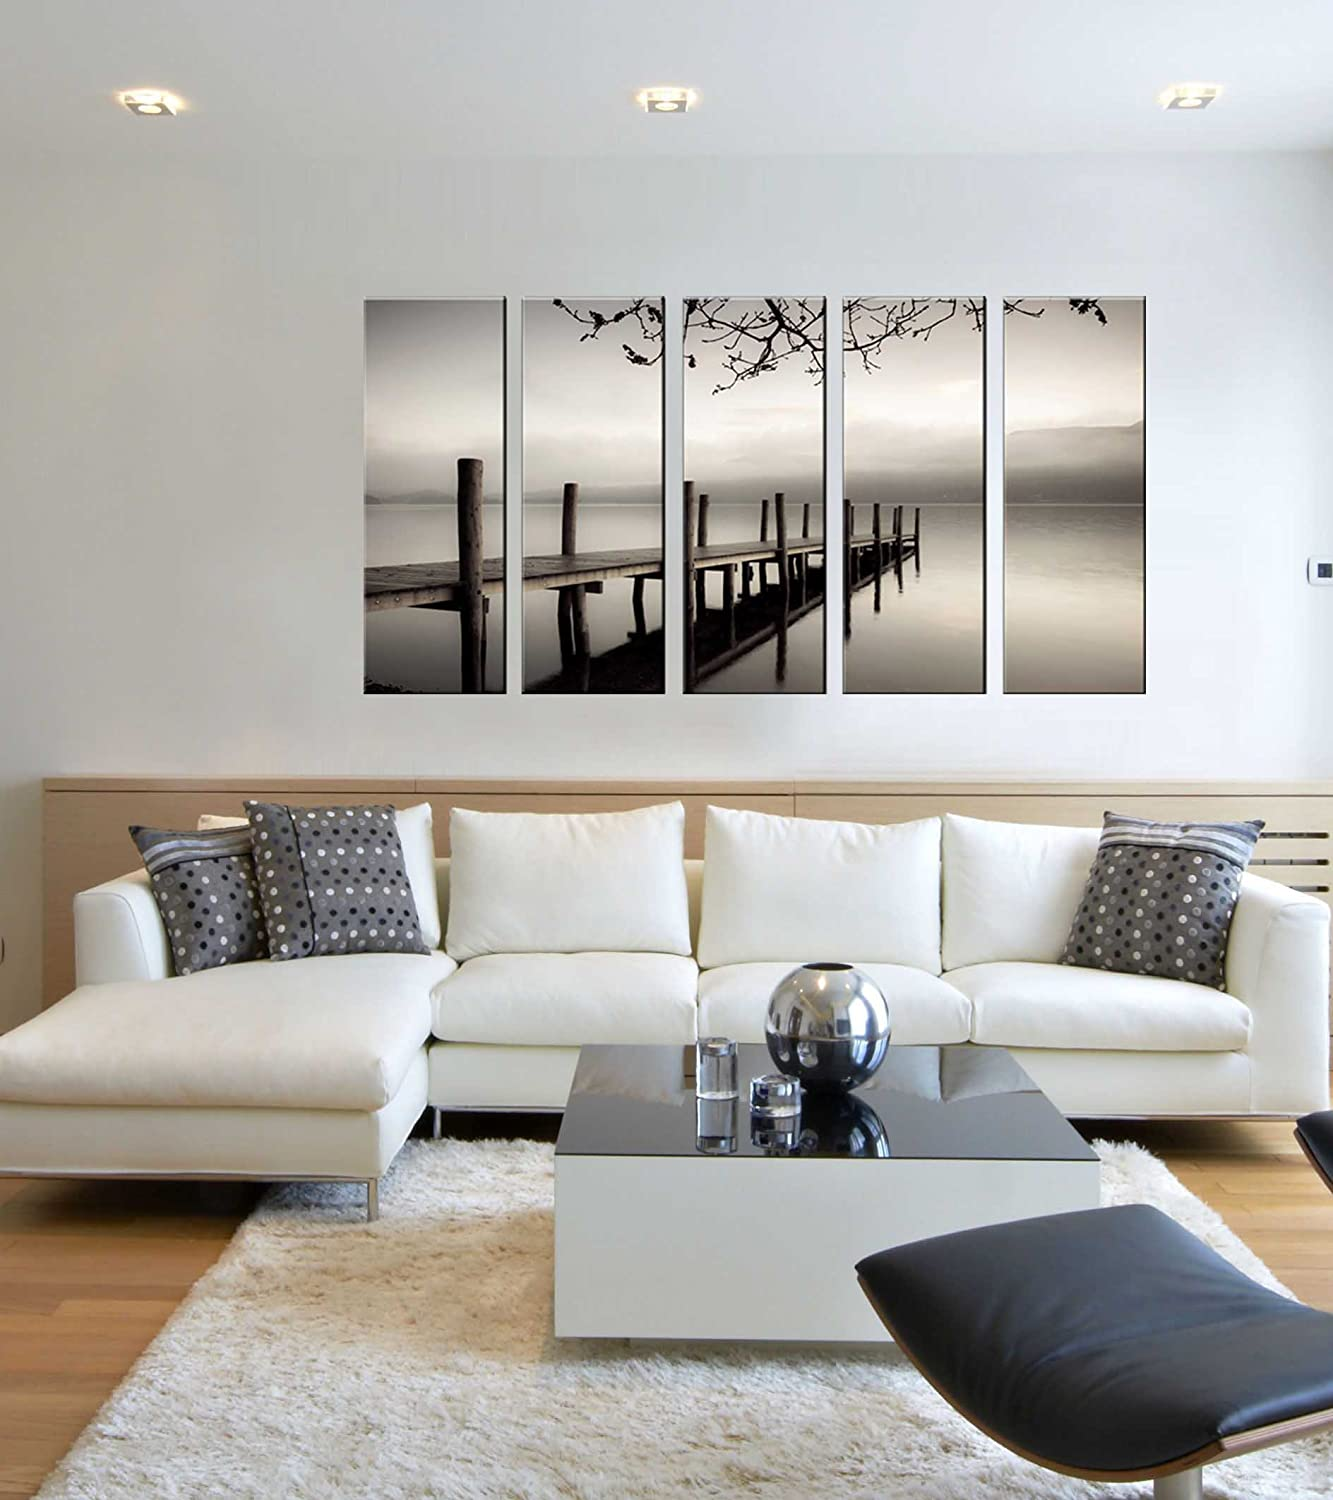 Amazon.com: Black and white sea lake canvas prints, lake bridge ...